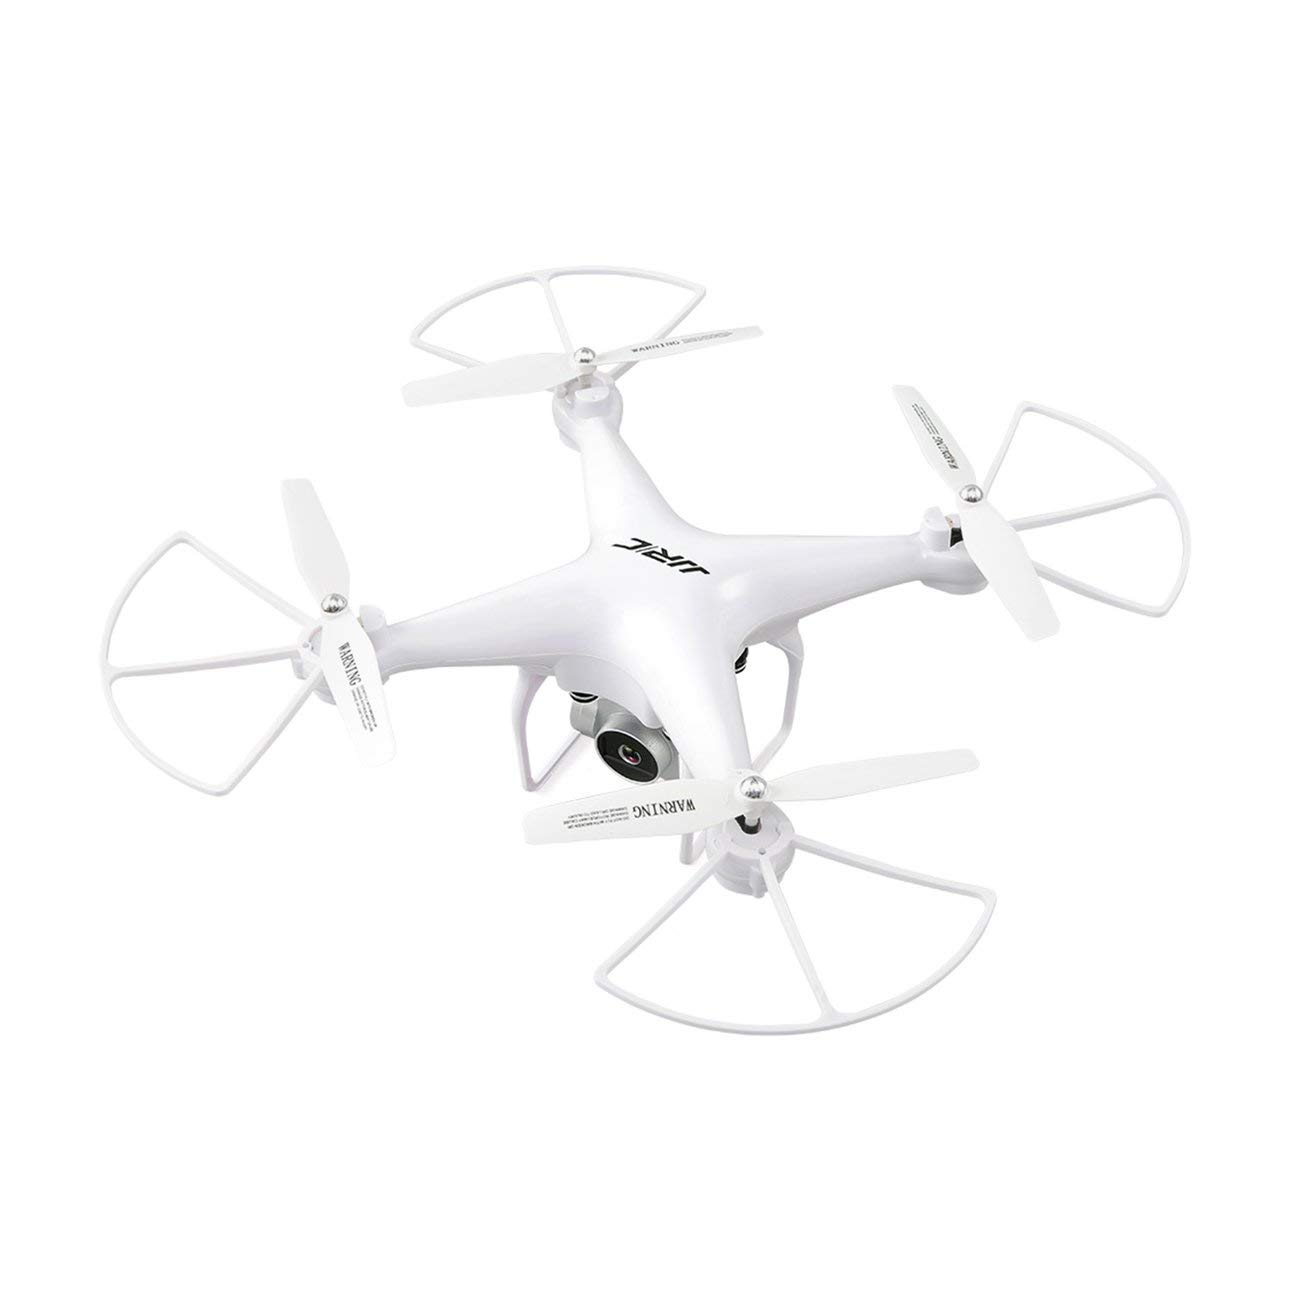 Ballylelly JJR   C H68 RC Drone 2.4G FPV RC Quadcopter Drone con 720P HD Camera Altitude Hold modalità Headless 3D-Flip 20mins Long Flight (Bianco)